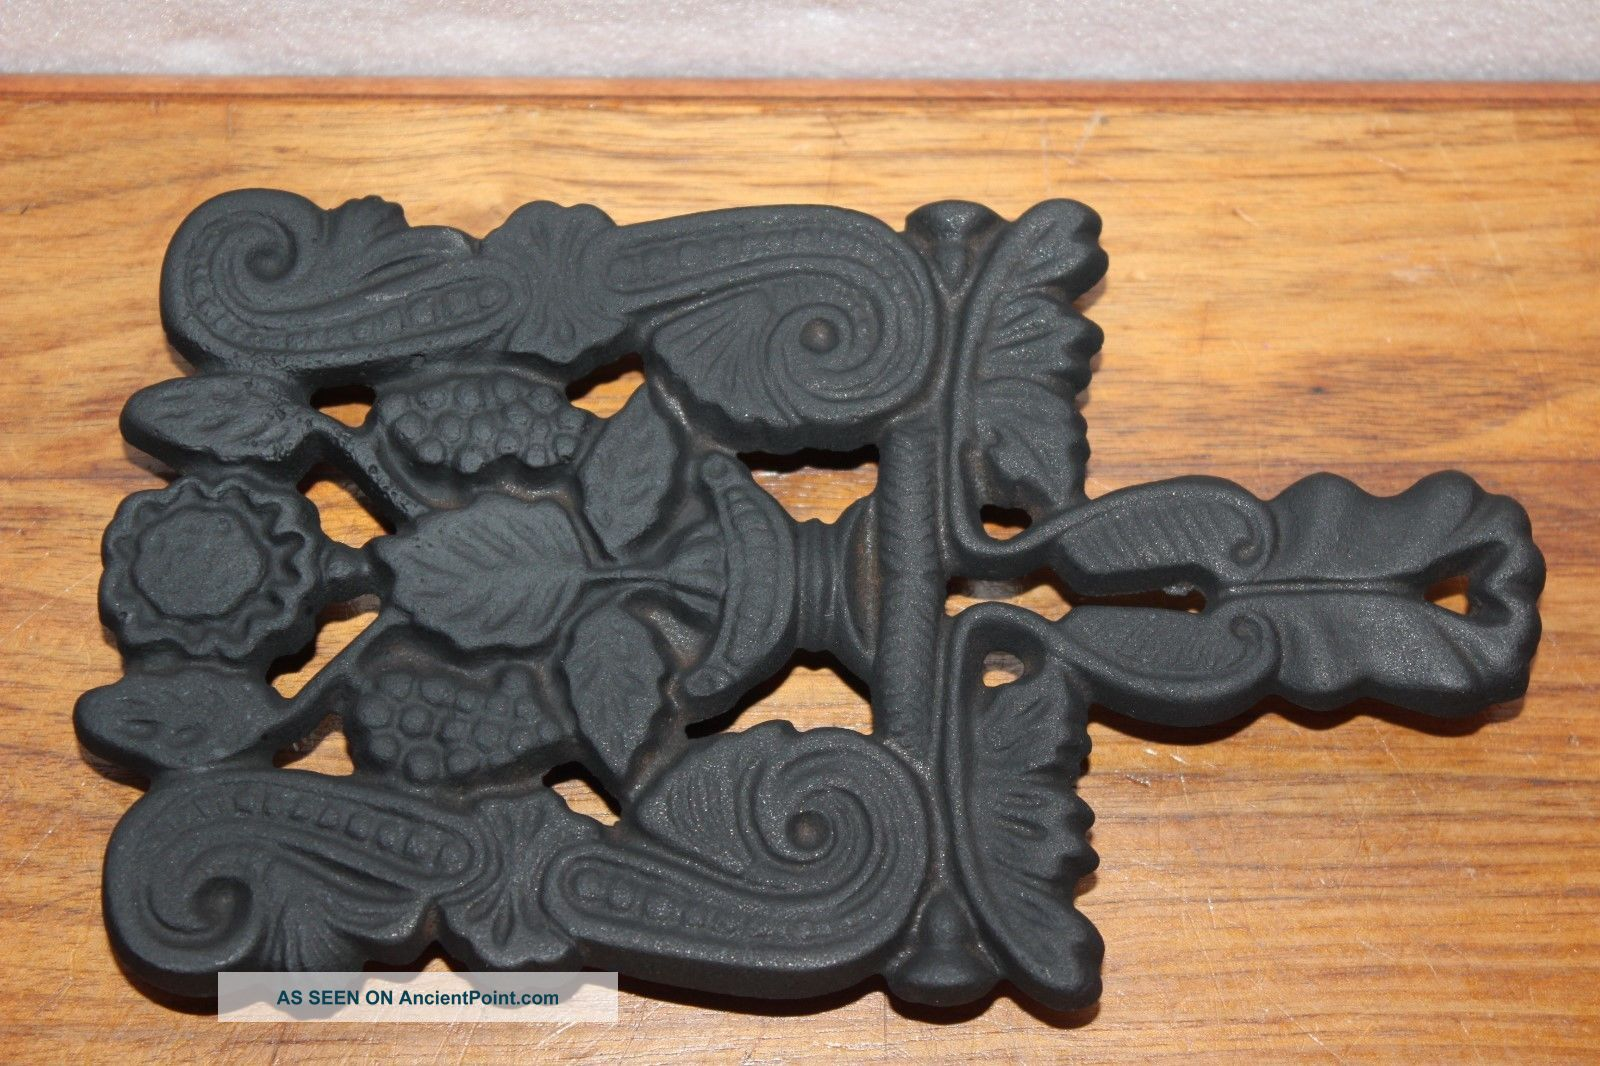 Vintage 1950 ' S Griswold Trivet P/n No.  1729 Grape Design Cast Iron Cookware Other Antique Home & Hearth photo